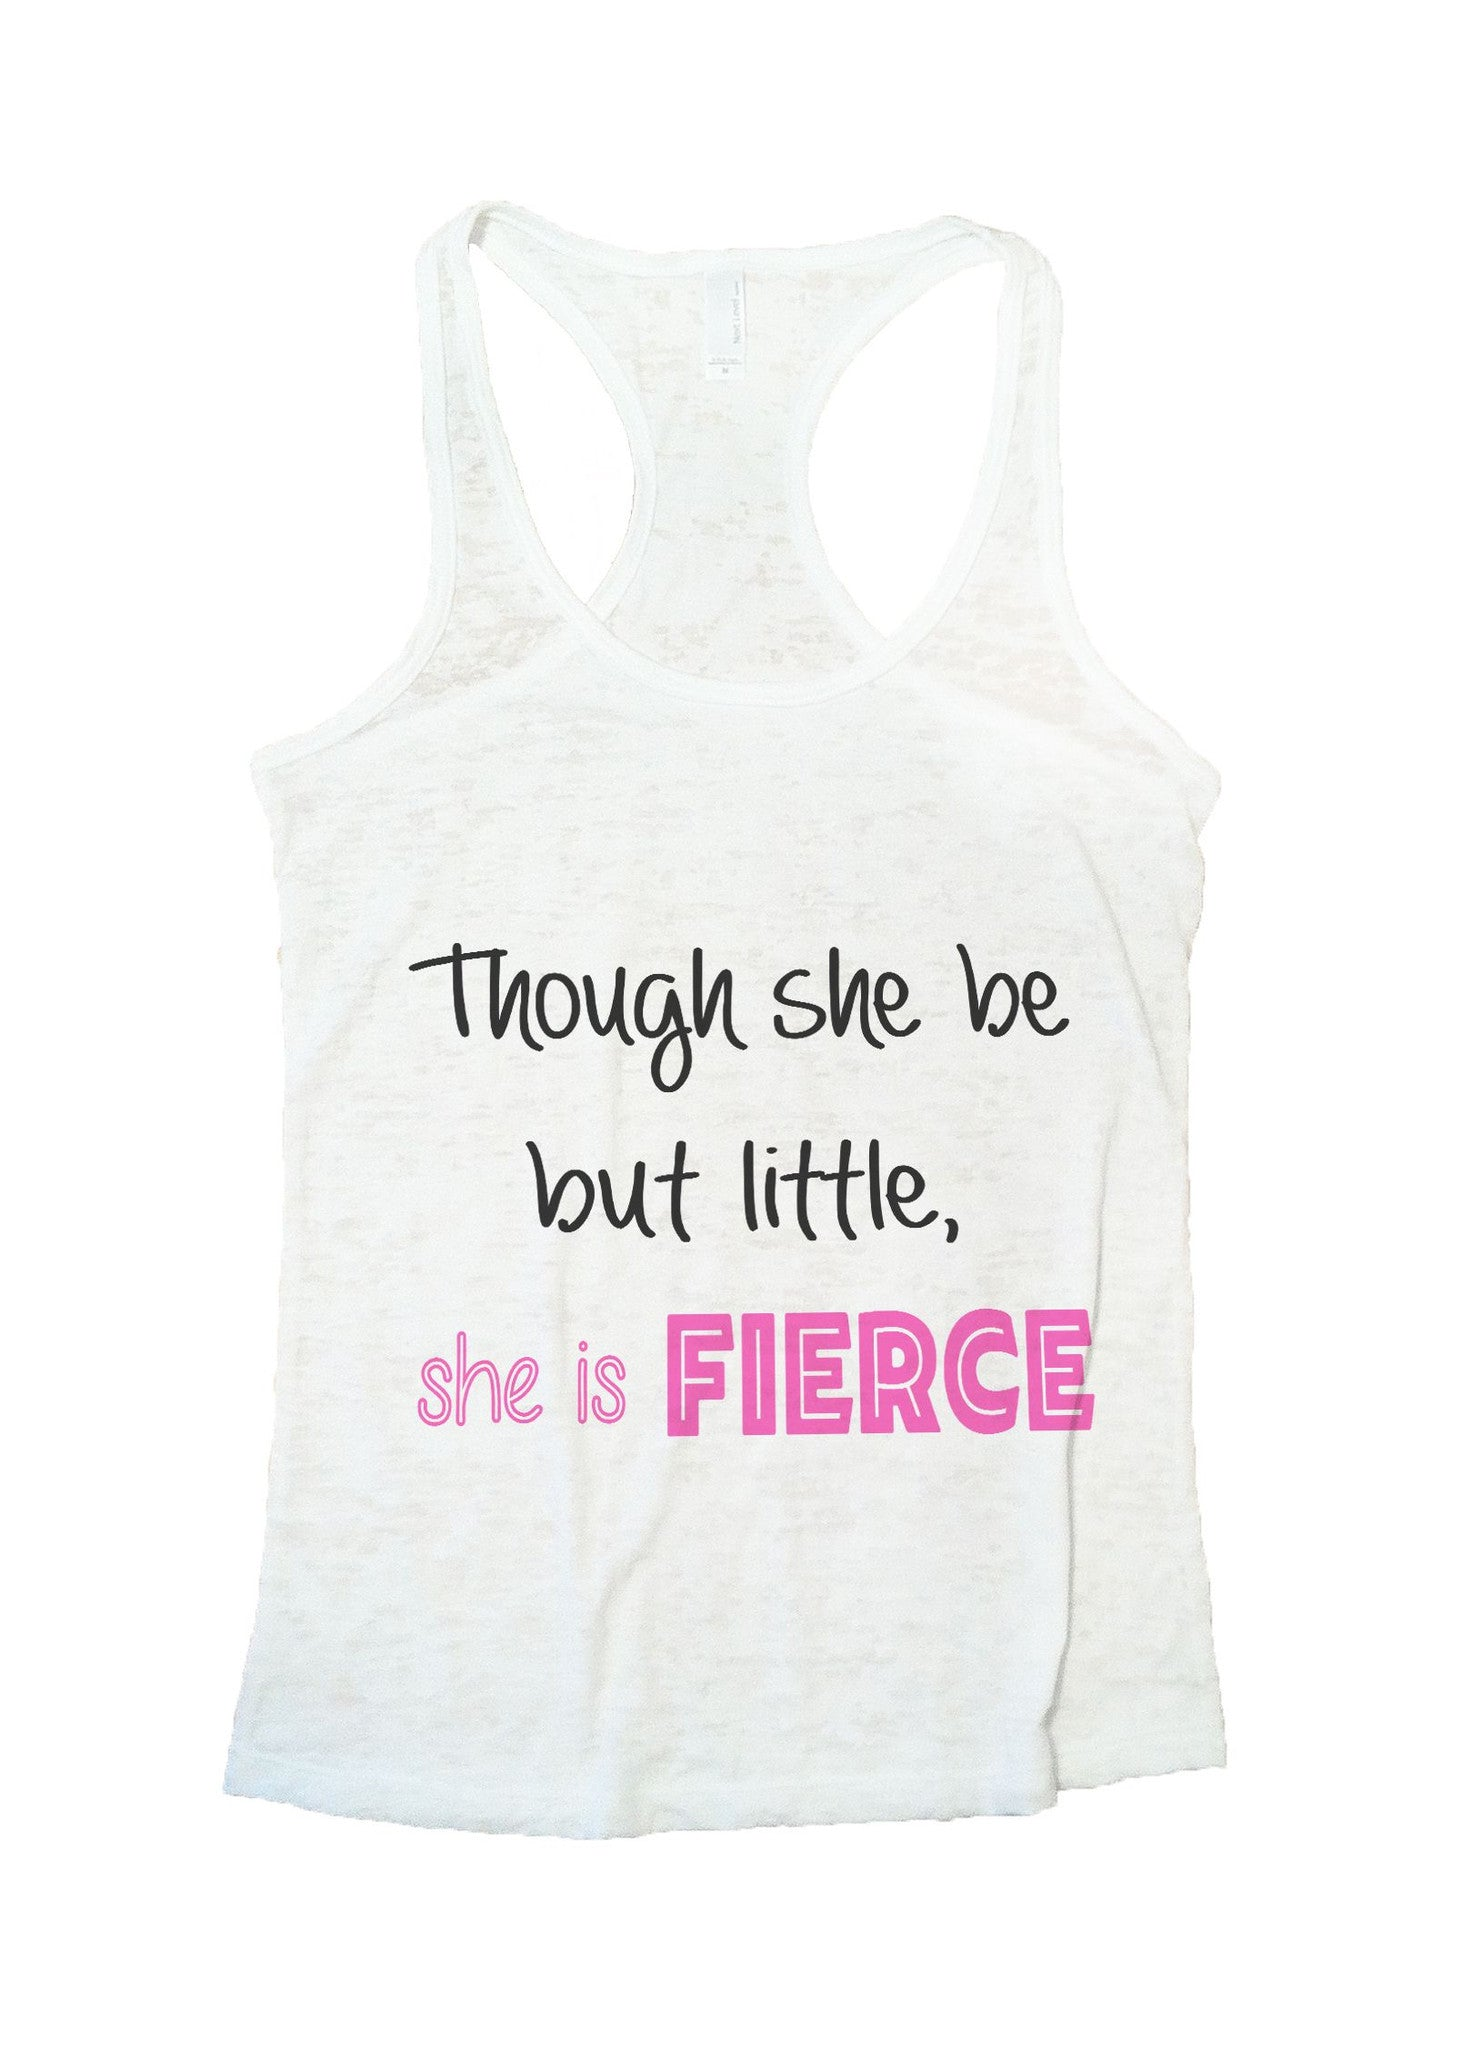 Though She Be But Little, She Is Fierce Burnout Tank Top By BurnoutTankTops.com - 615 - Funny Shirts Tank Tops Burnouts and Triblends  - 1